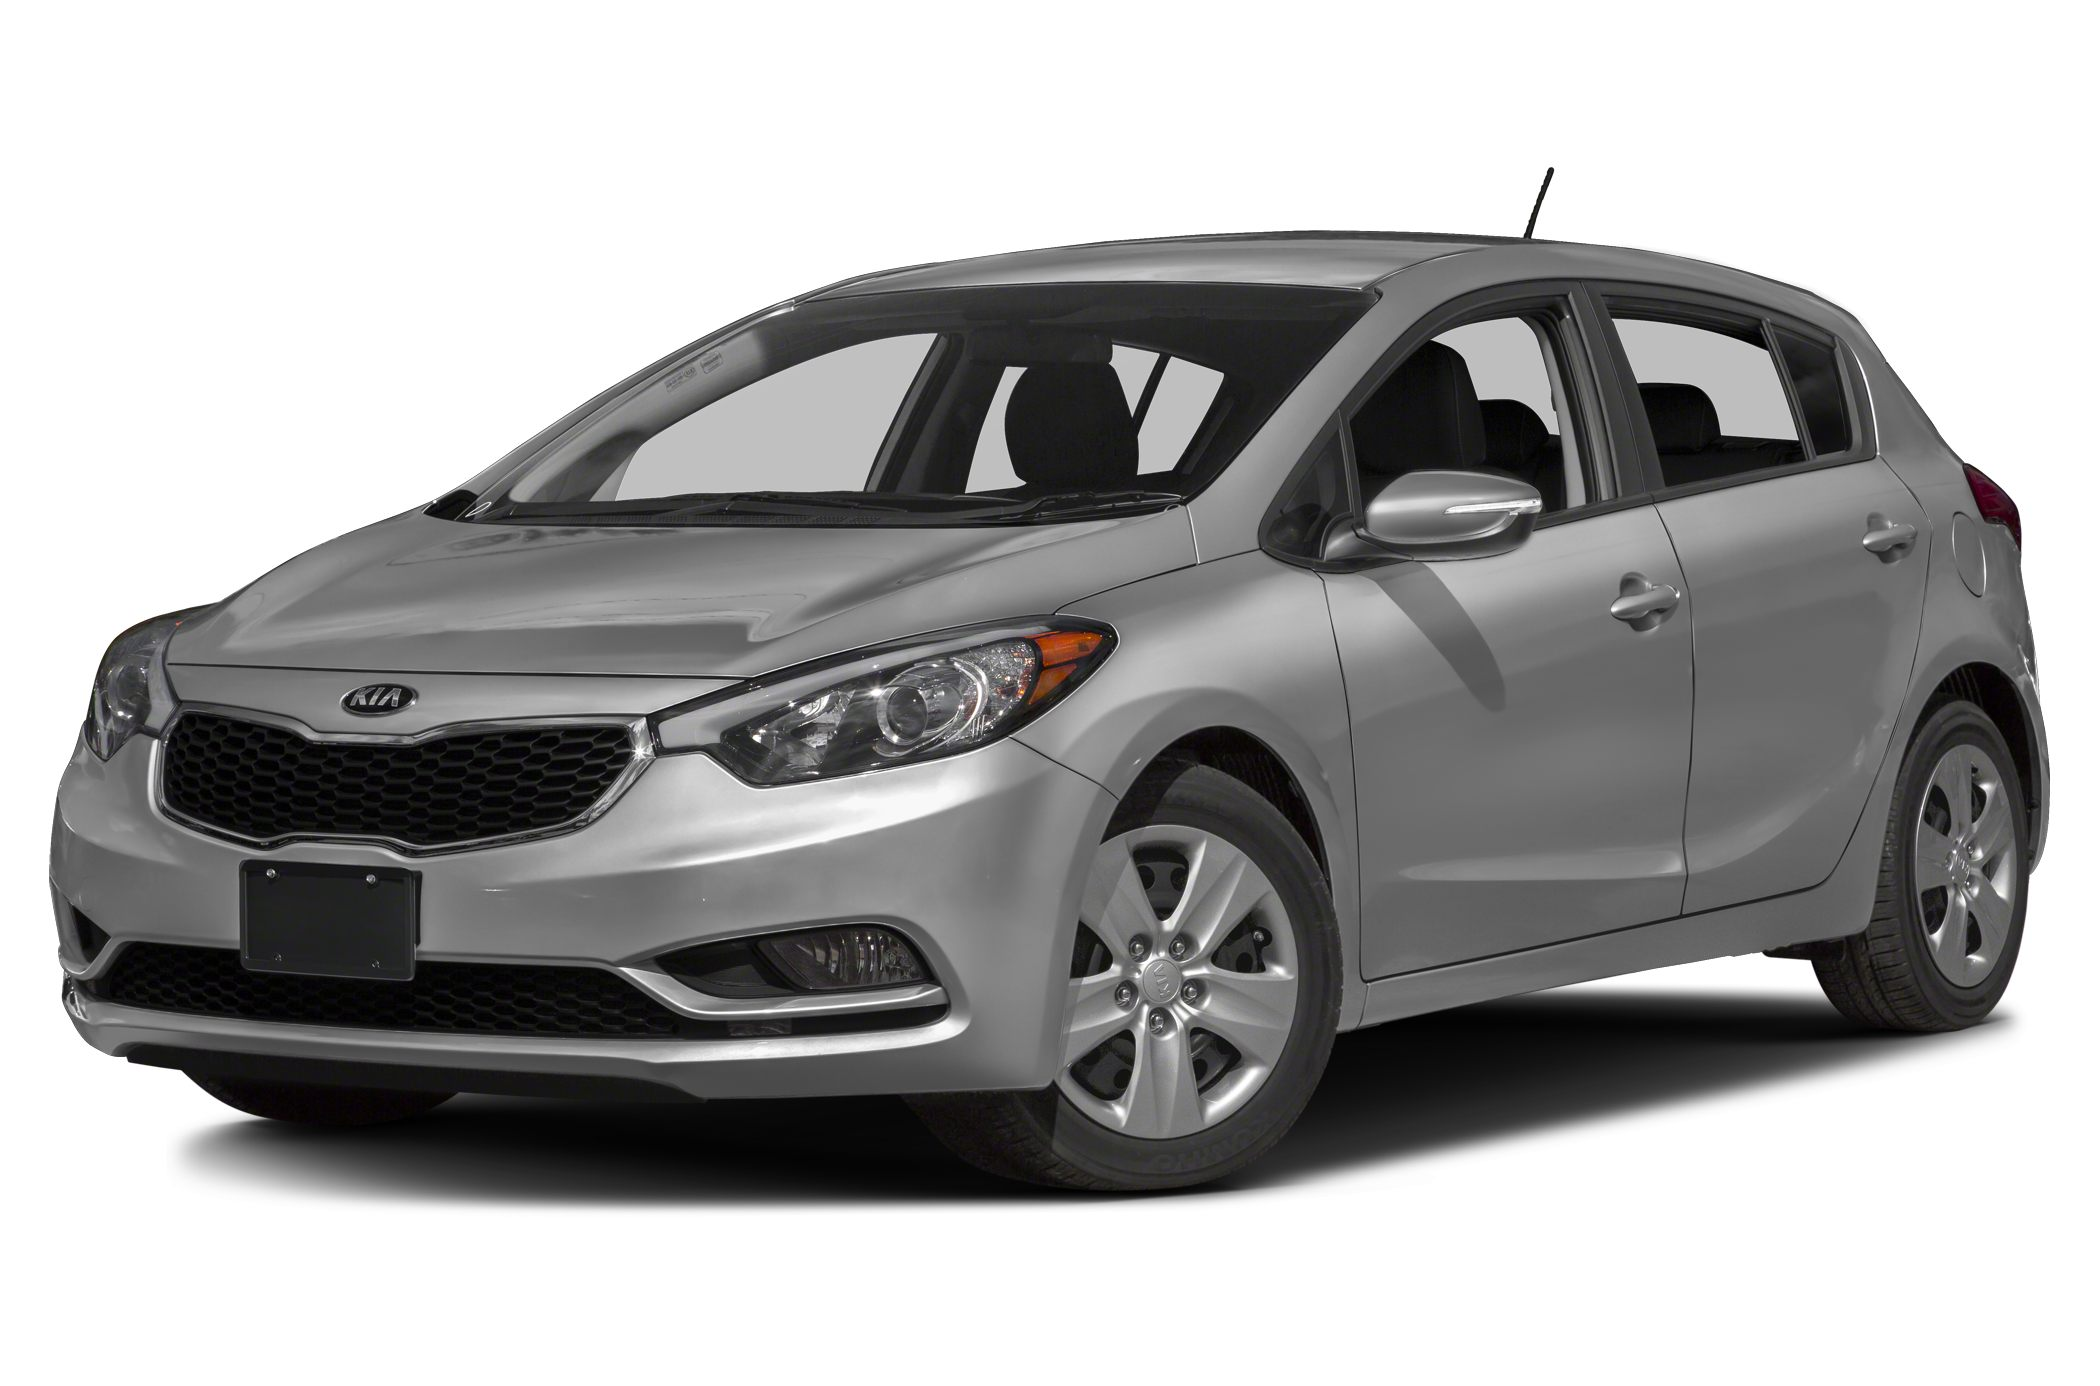 USC60KIC112A021001 Interesting Info About Kia forte Ex 2010 with Interesting Images Cars Review